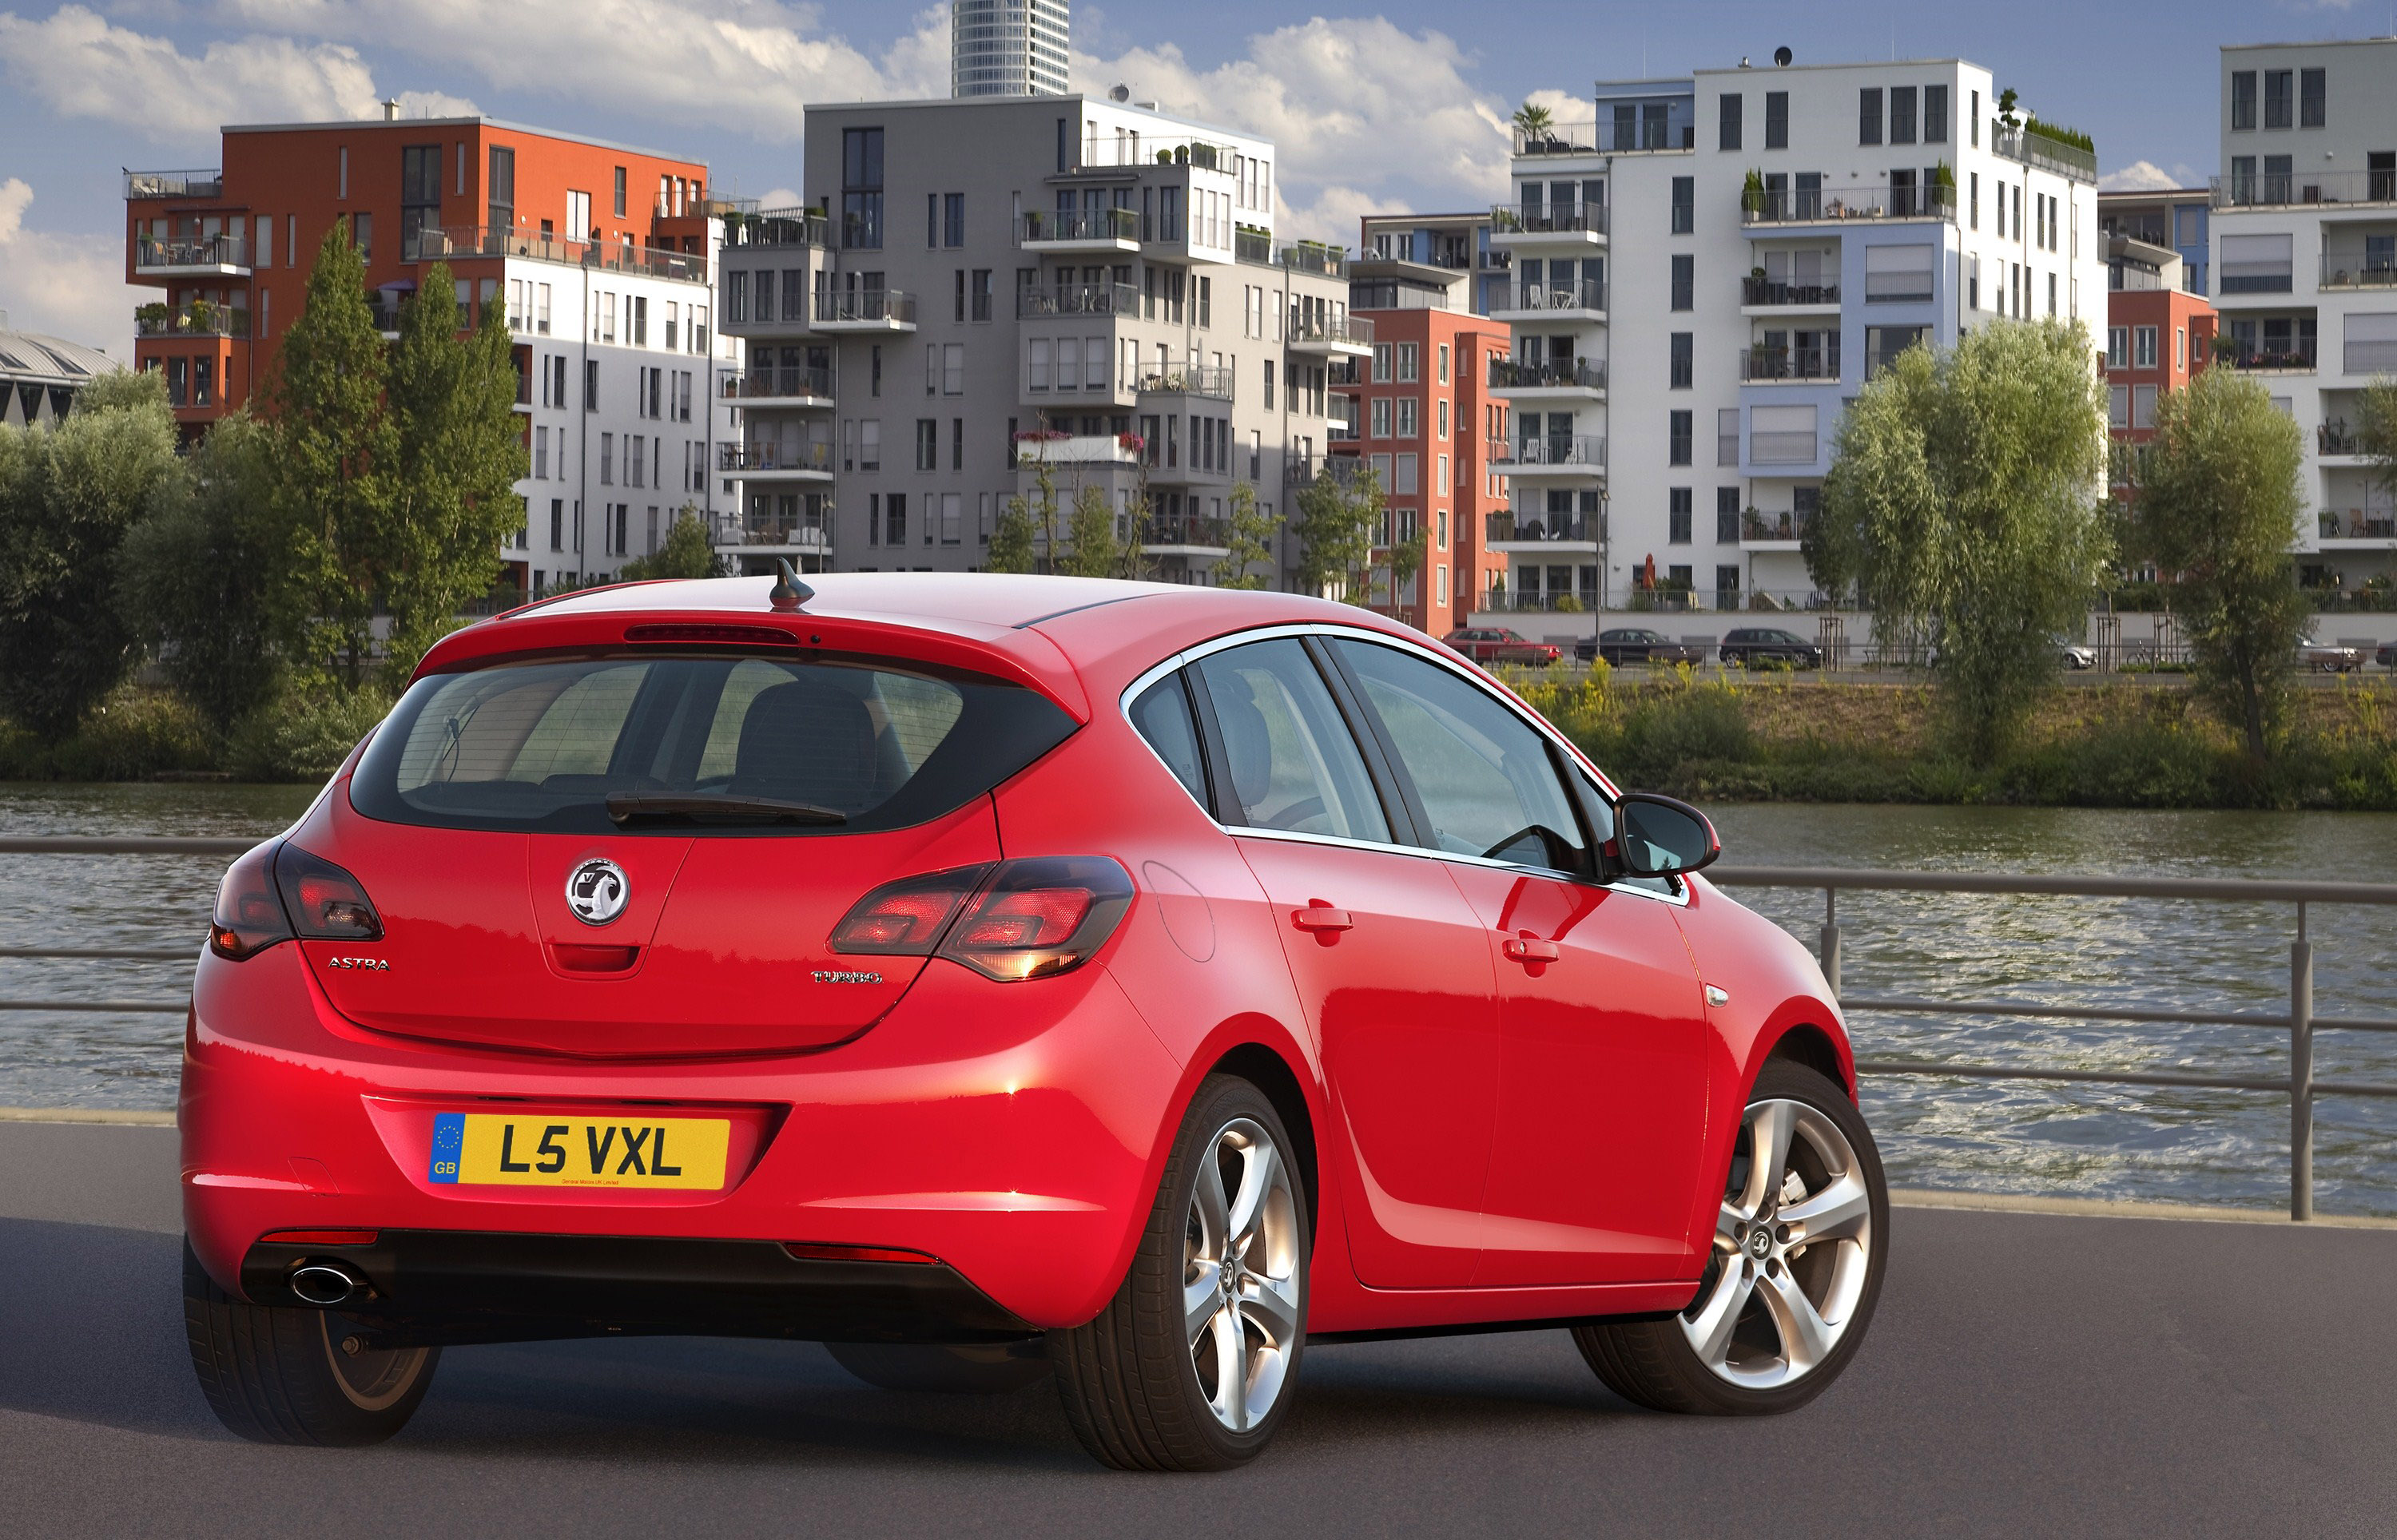 vauxhall astra won best new car from 2010 fleet world awards. Black Bedroom Furniture Sets. Home Design Ideas